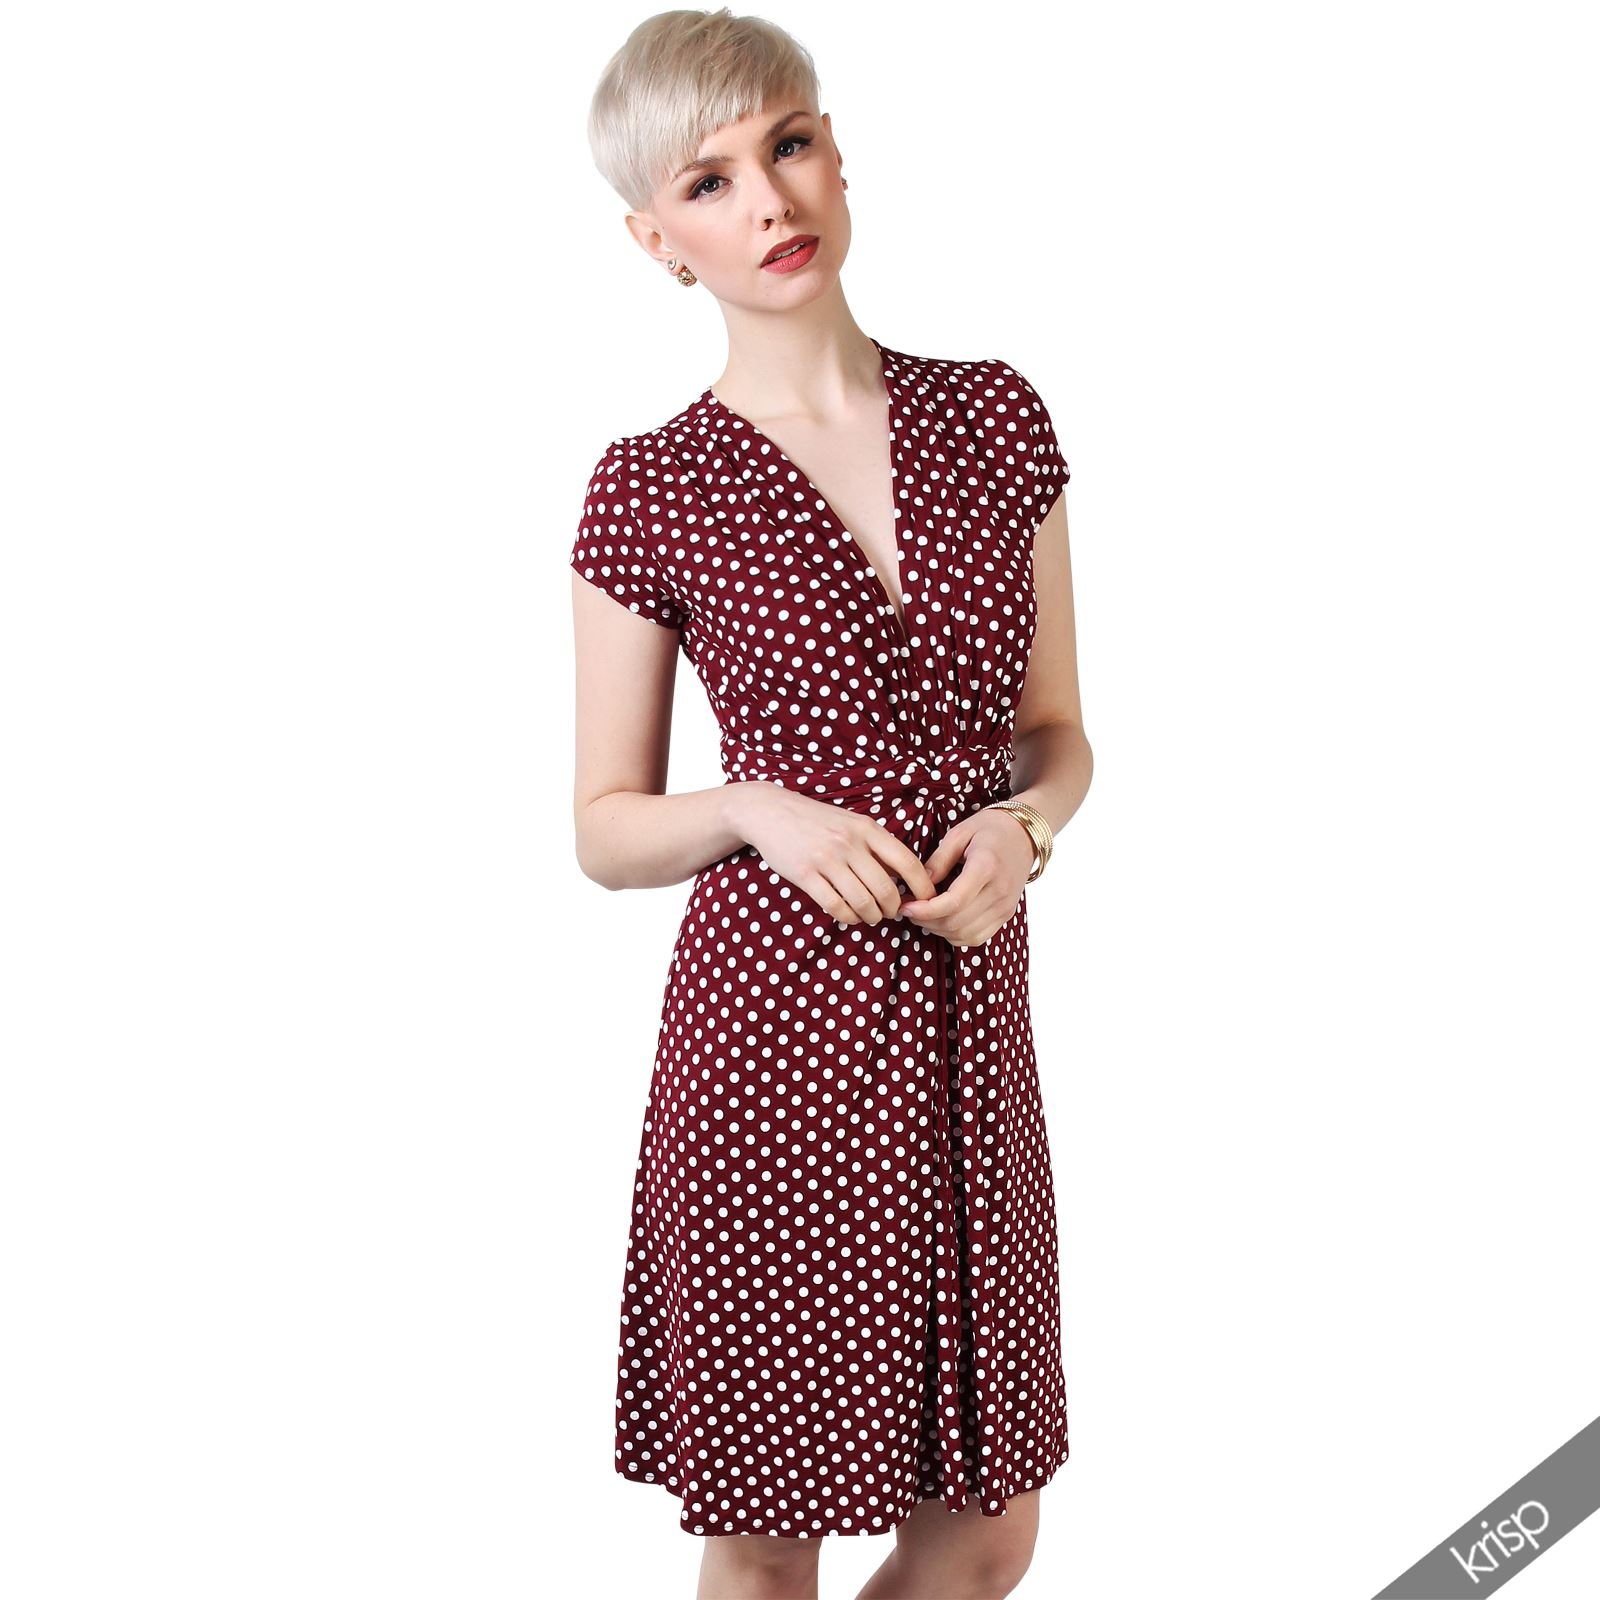 Womens-Polka-Dot-Dress-Pleated-Skirt-Wrap-Front-Mini-V-Neck-Top-Swing thumbnail 46